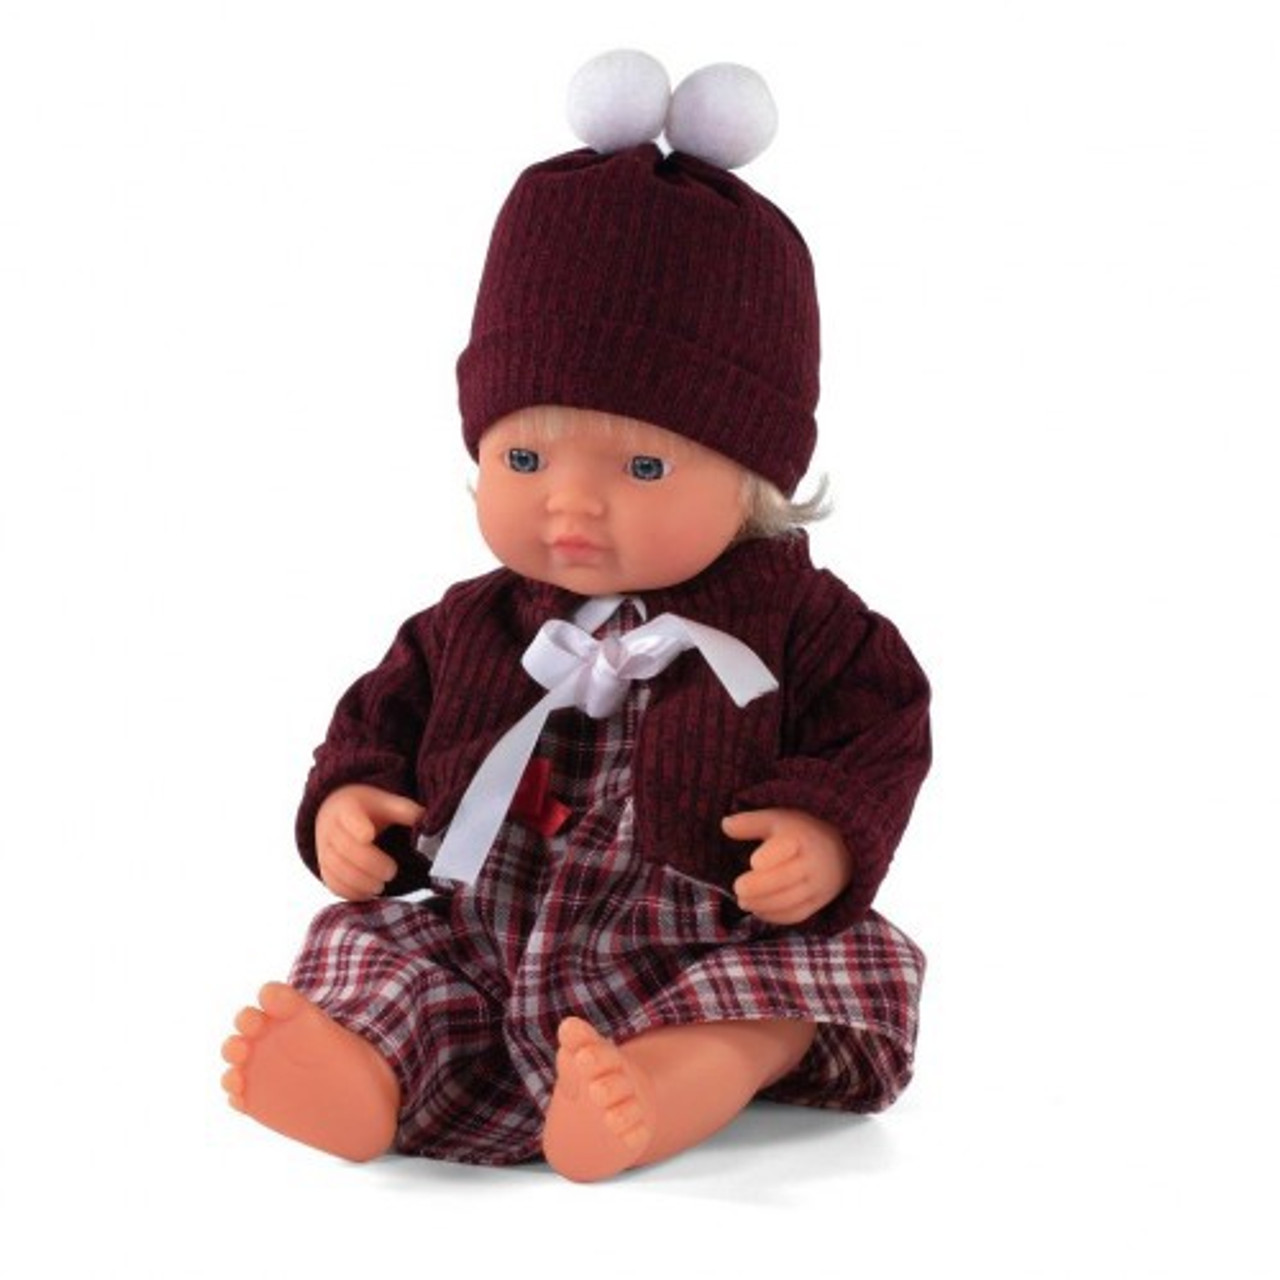 Miniland Doll Anatomically Correct Baby & Outfit Boxed 38 cm (UNDRESSED) - Caucasian Girl | Baby Barn Discounts